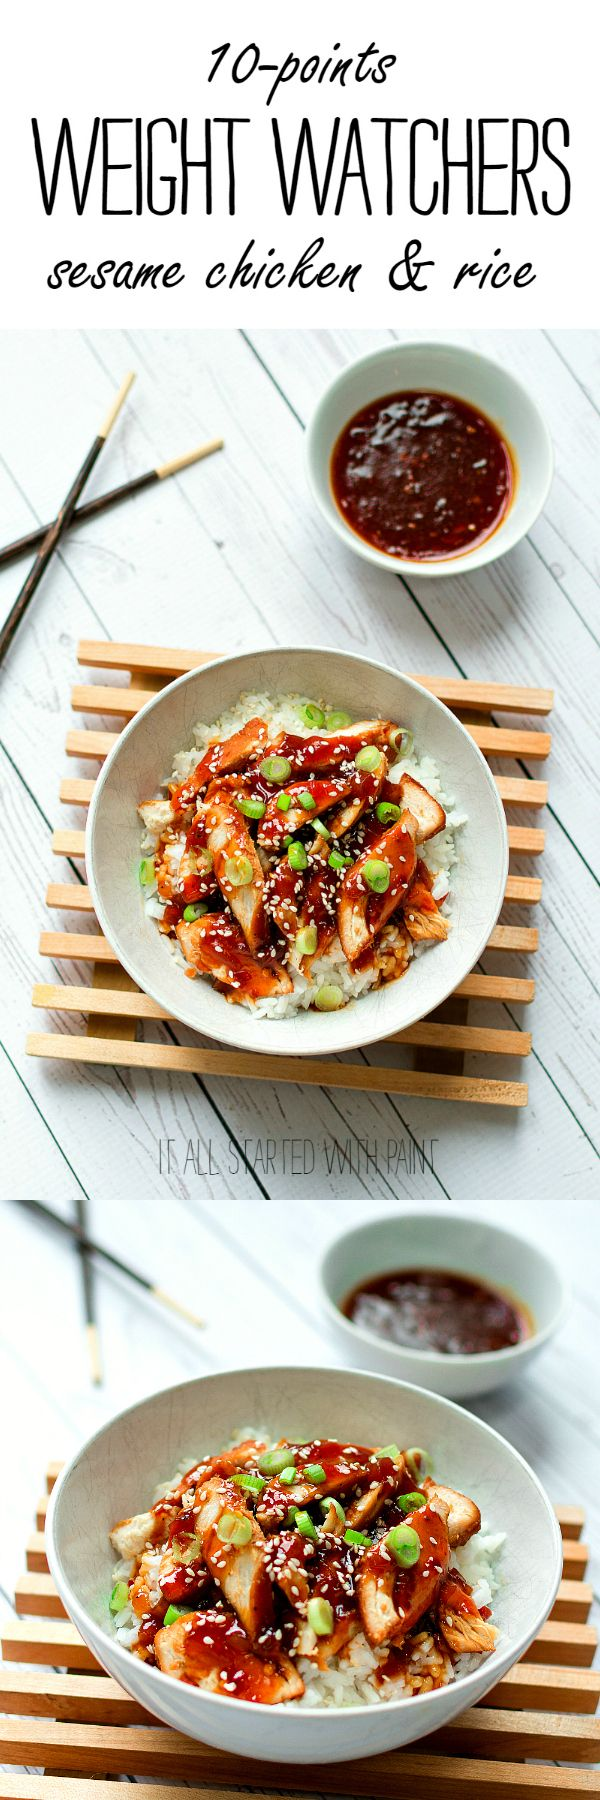 Weight Watchers Recipe Ideas for Dinner: Healthy Sesame Chicken Recipe - 10 Points - Weight Watchers Recipe Ideas - Weight Watcher Dinner Ideas @ It All Started With Paint www.itallstartedwithpaint.com